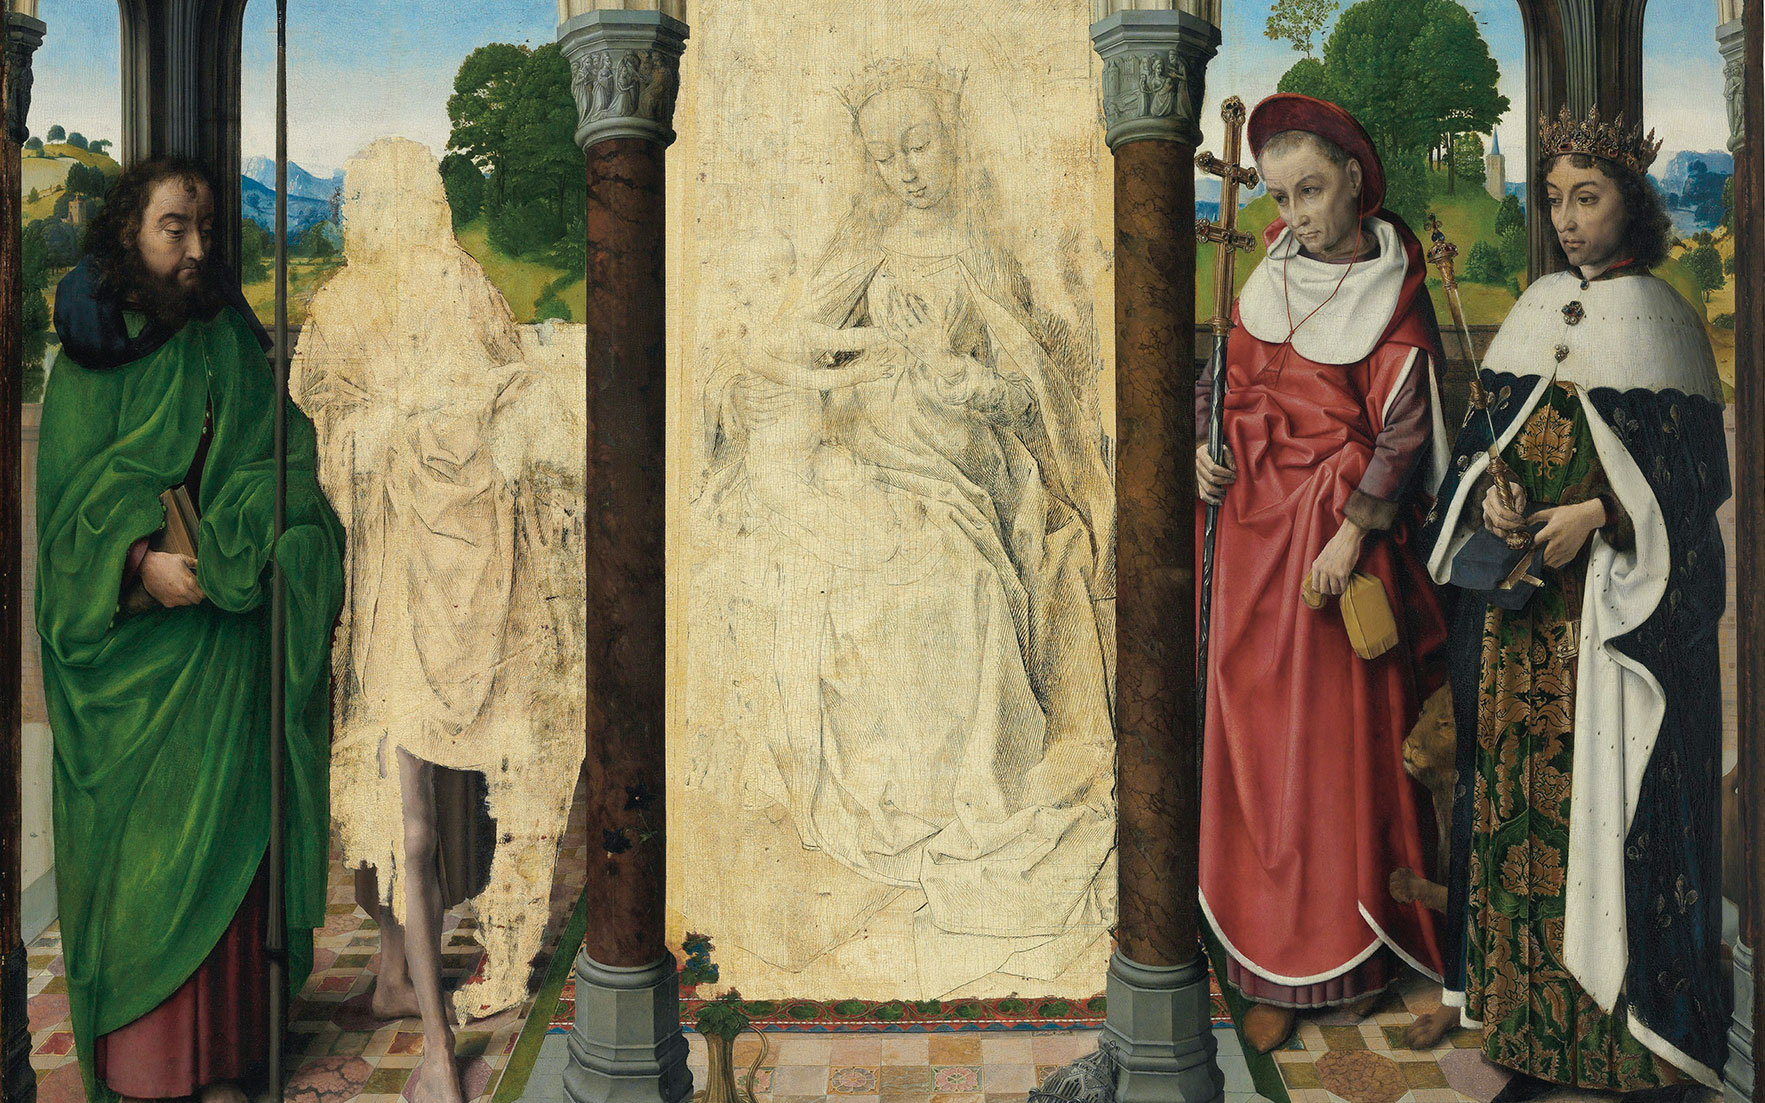 Rare Renaissance altarpiece to be auctioned for